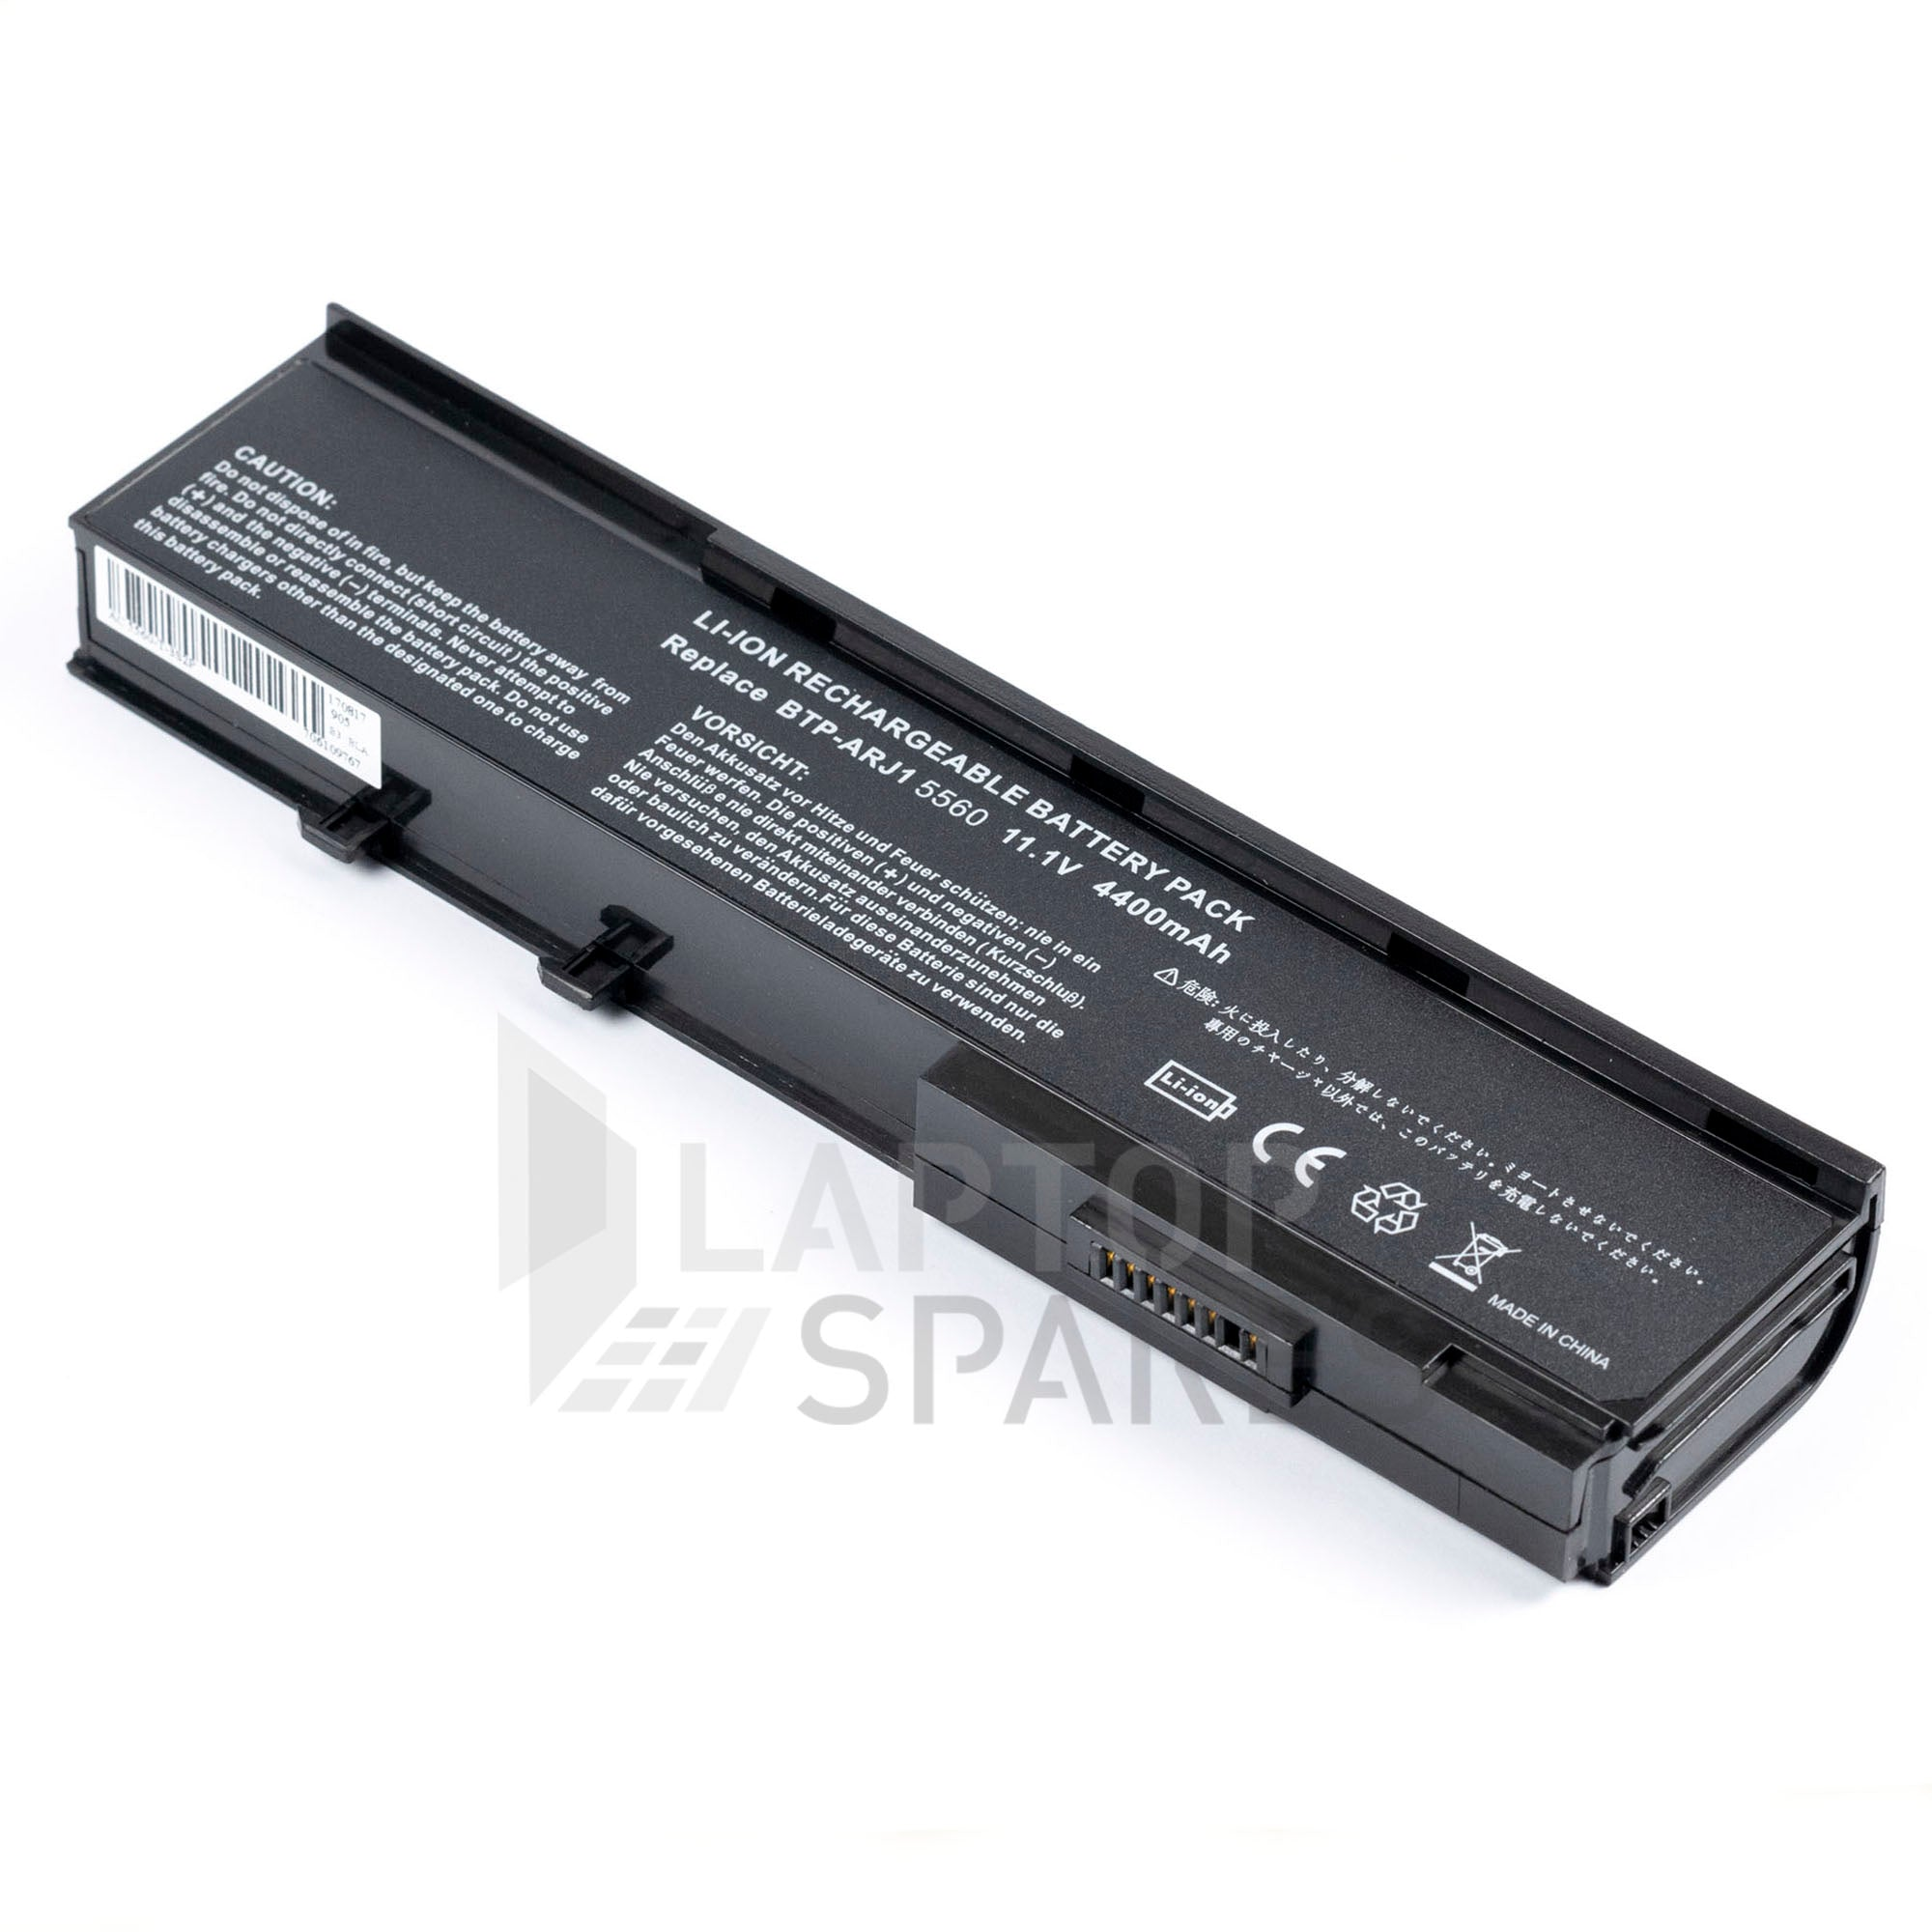 Acer Aspire 5560 4400mAh 6 Cell Battery